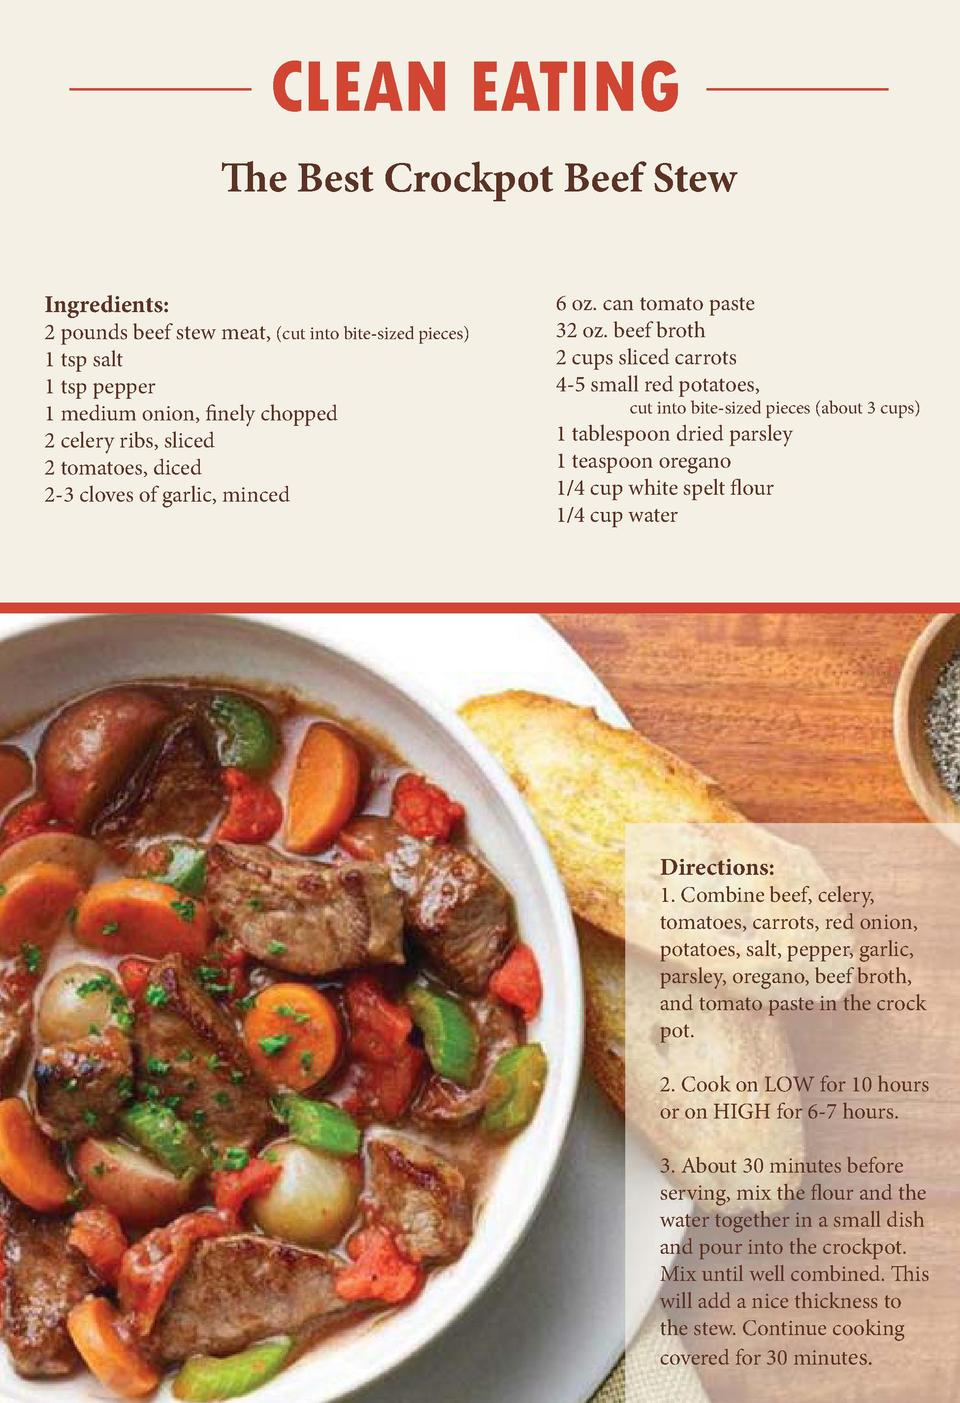 www.   vetownslink.com  CLEAN EATING The Best Crockpot Beef Stew Ingredients  2 pounds beef stew meat,  cut into bite-size...